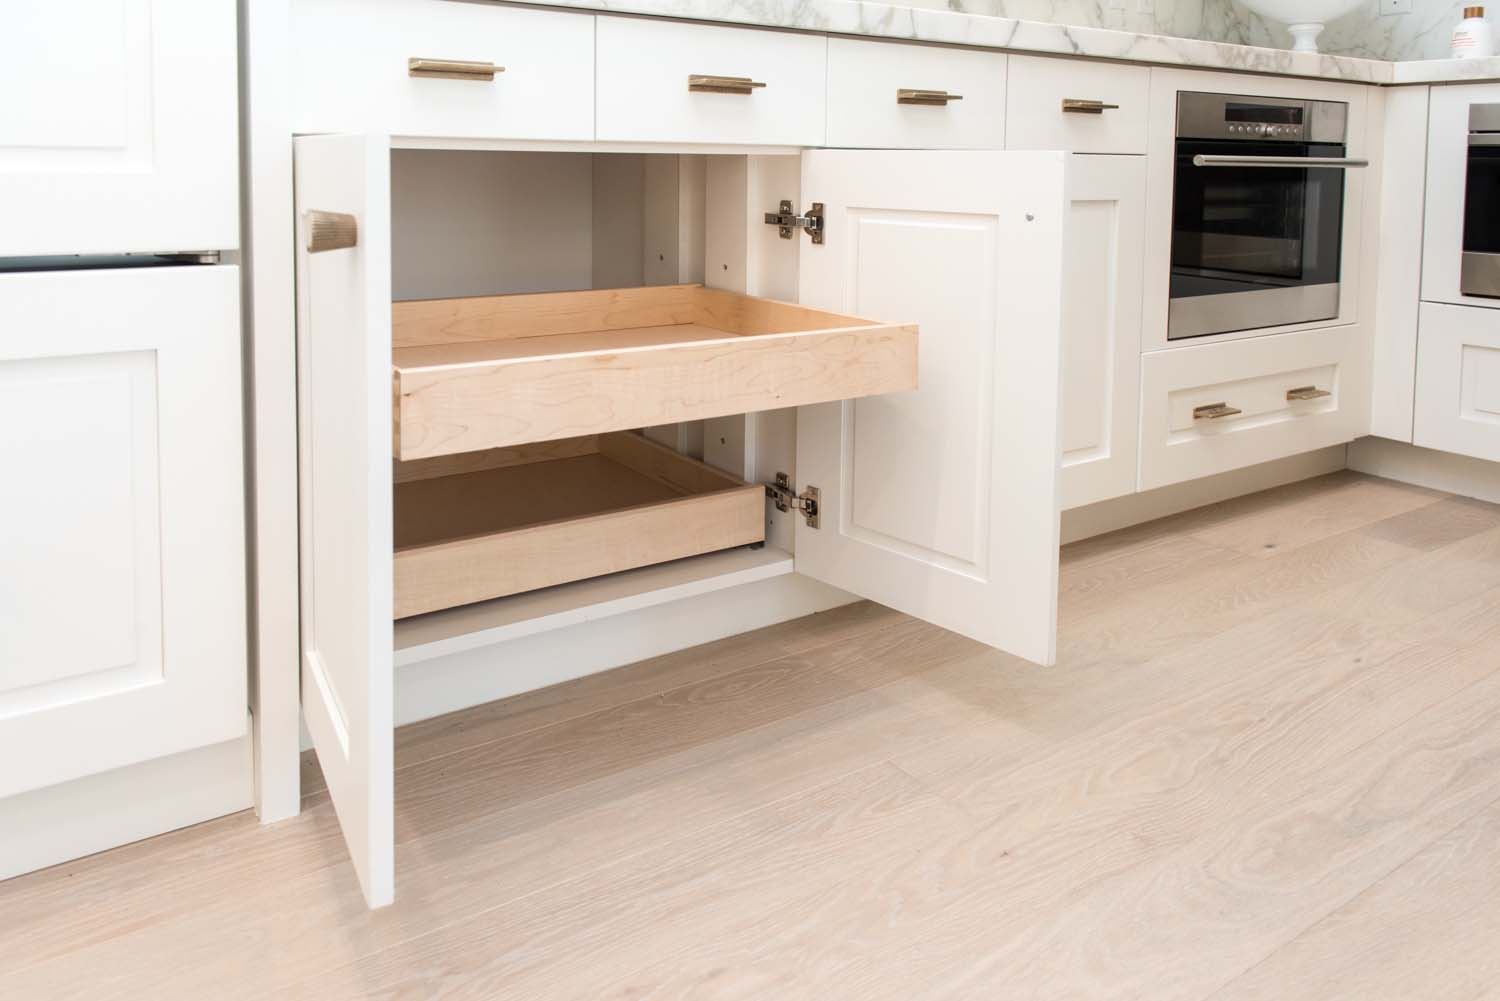 transitional-kitchen-cabinet-detail